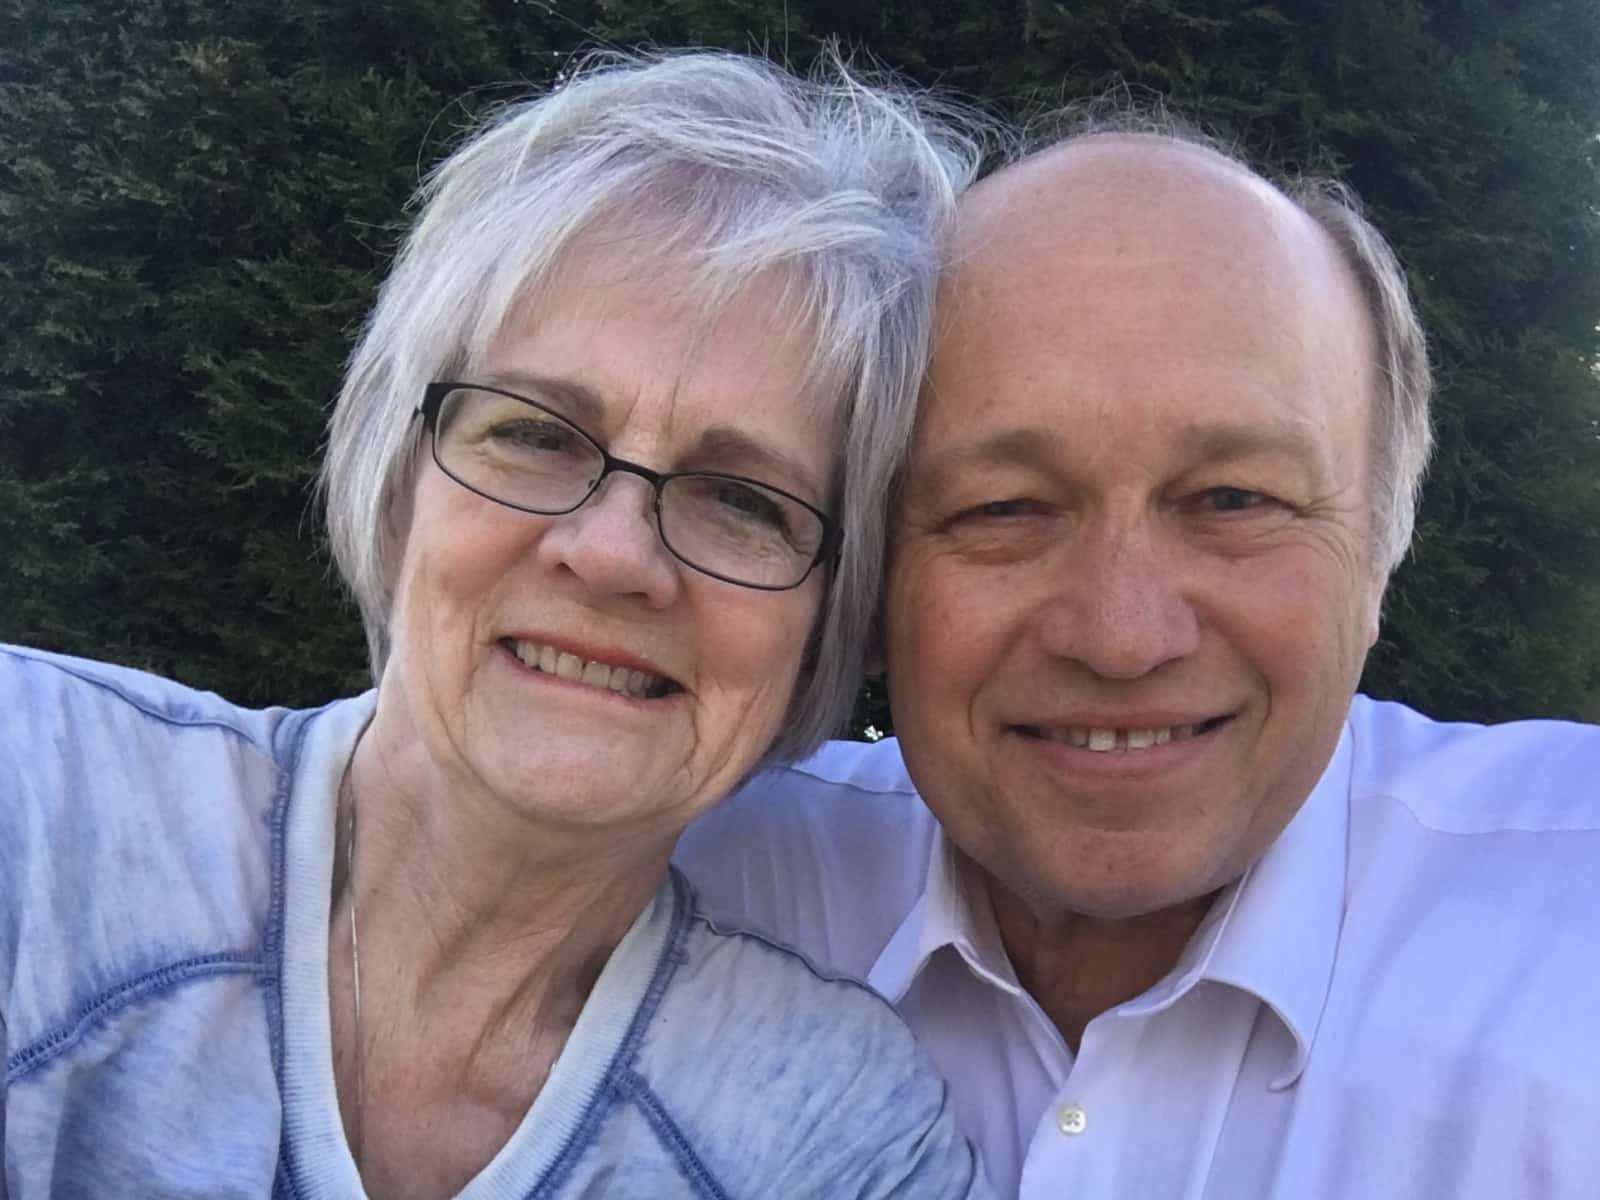 Wendy & Robert from Renton, Washington, United States